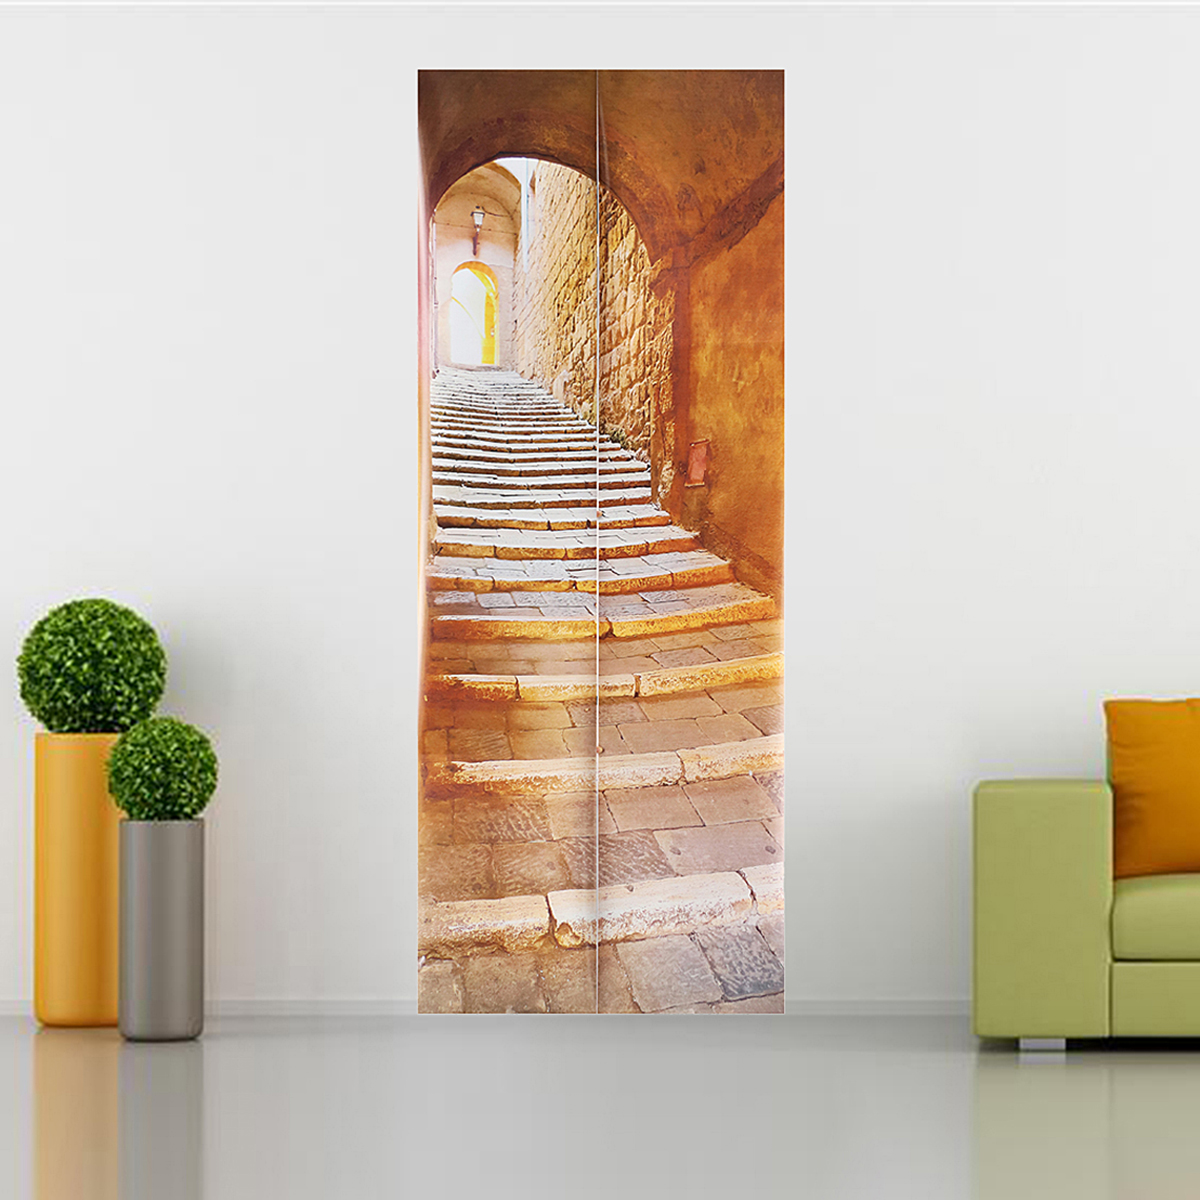 Décoration Murale Adhésive 3d Stone Stair Art Door Wall Fridge Sticker Decal Self Adhesive Mural Home Office Decor